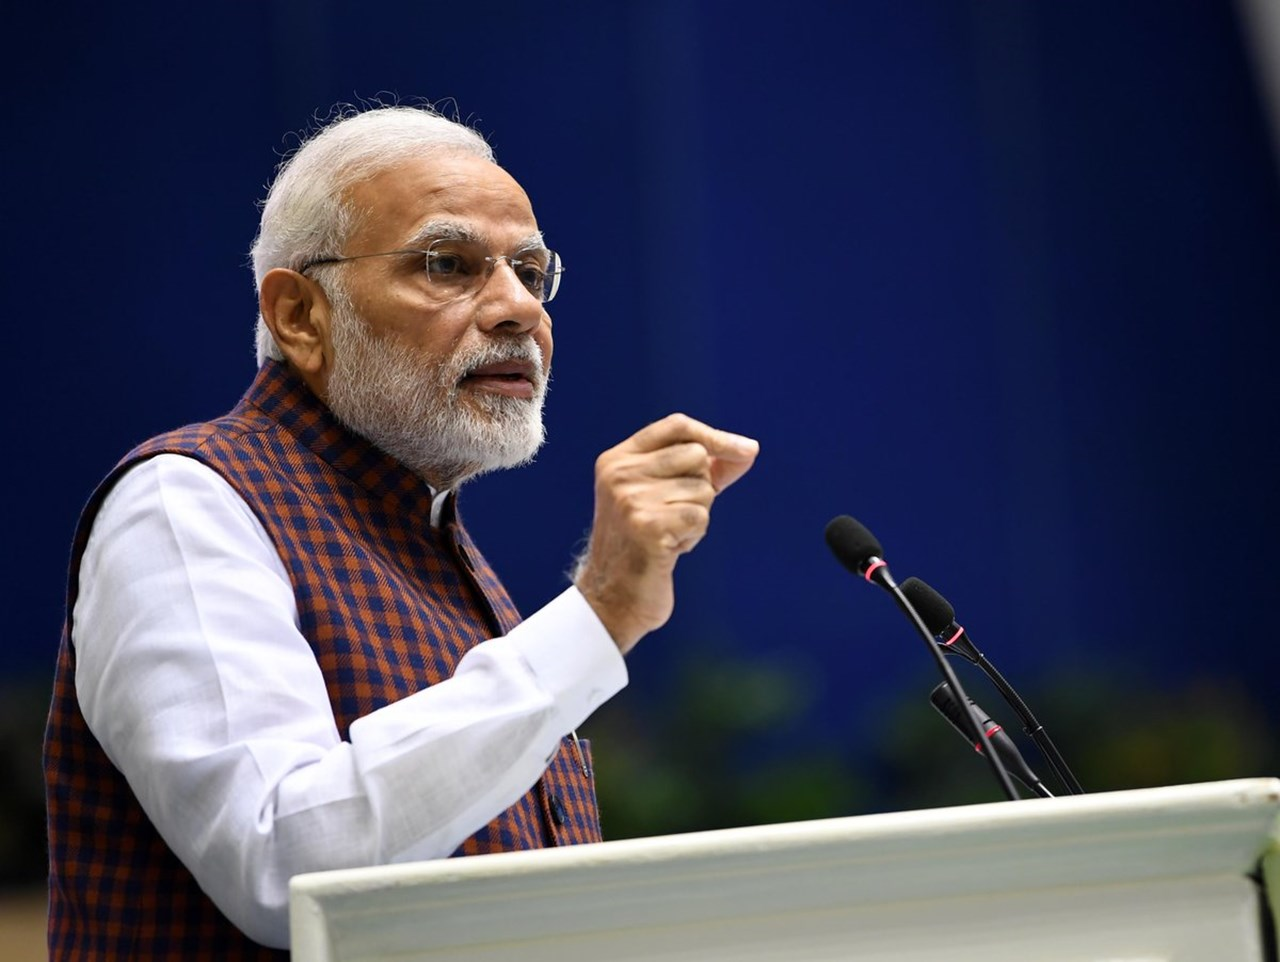 PM Modi to visit Balangir, Odisha on Jan 15 to launch several projects